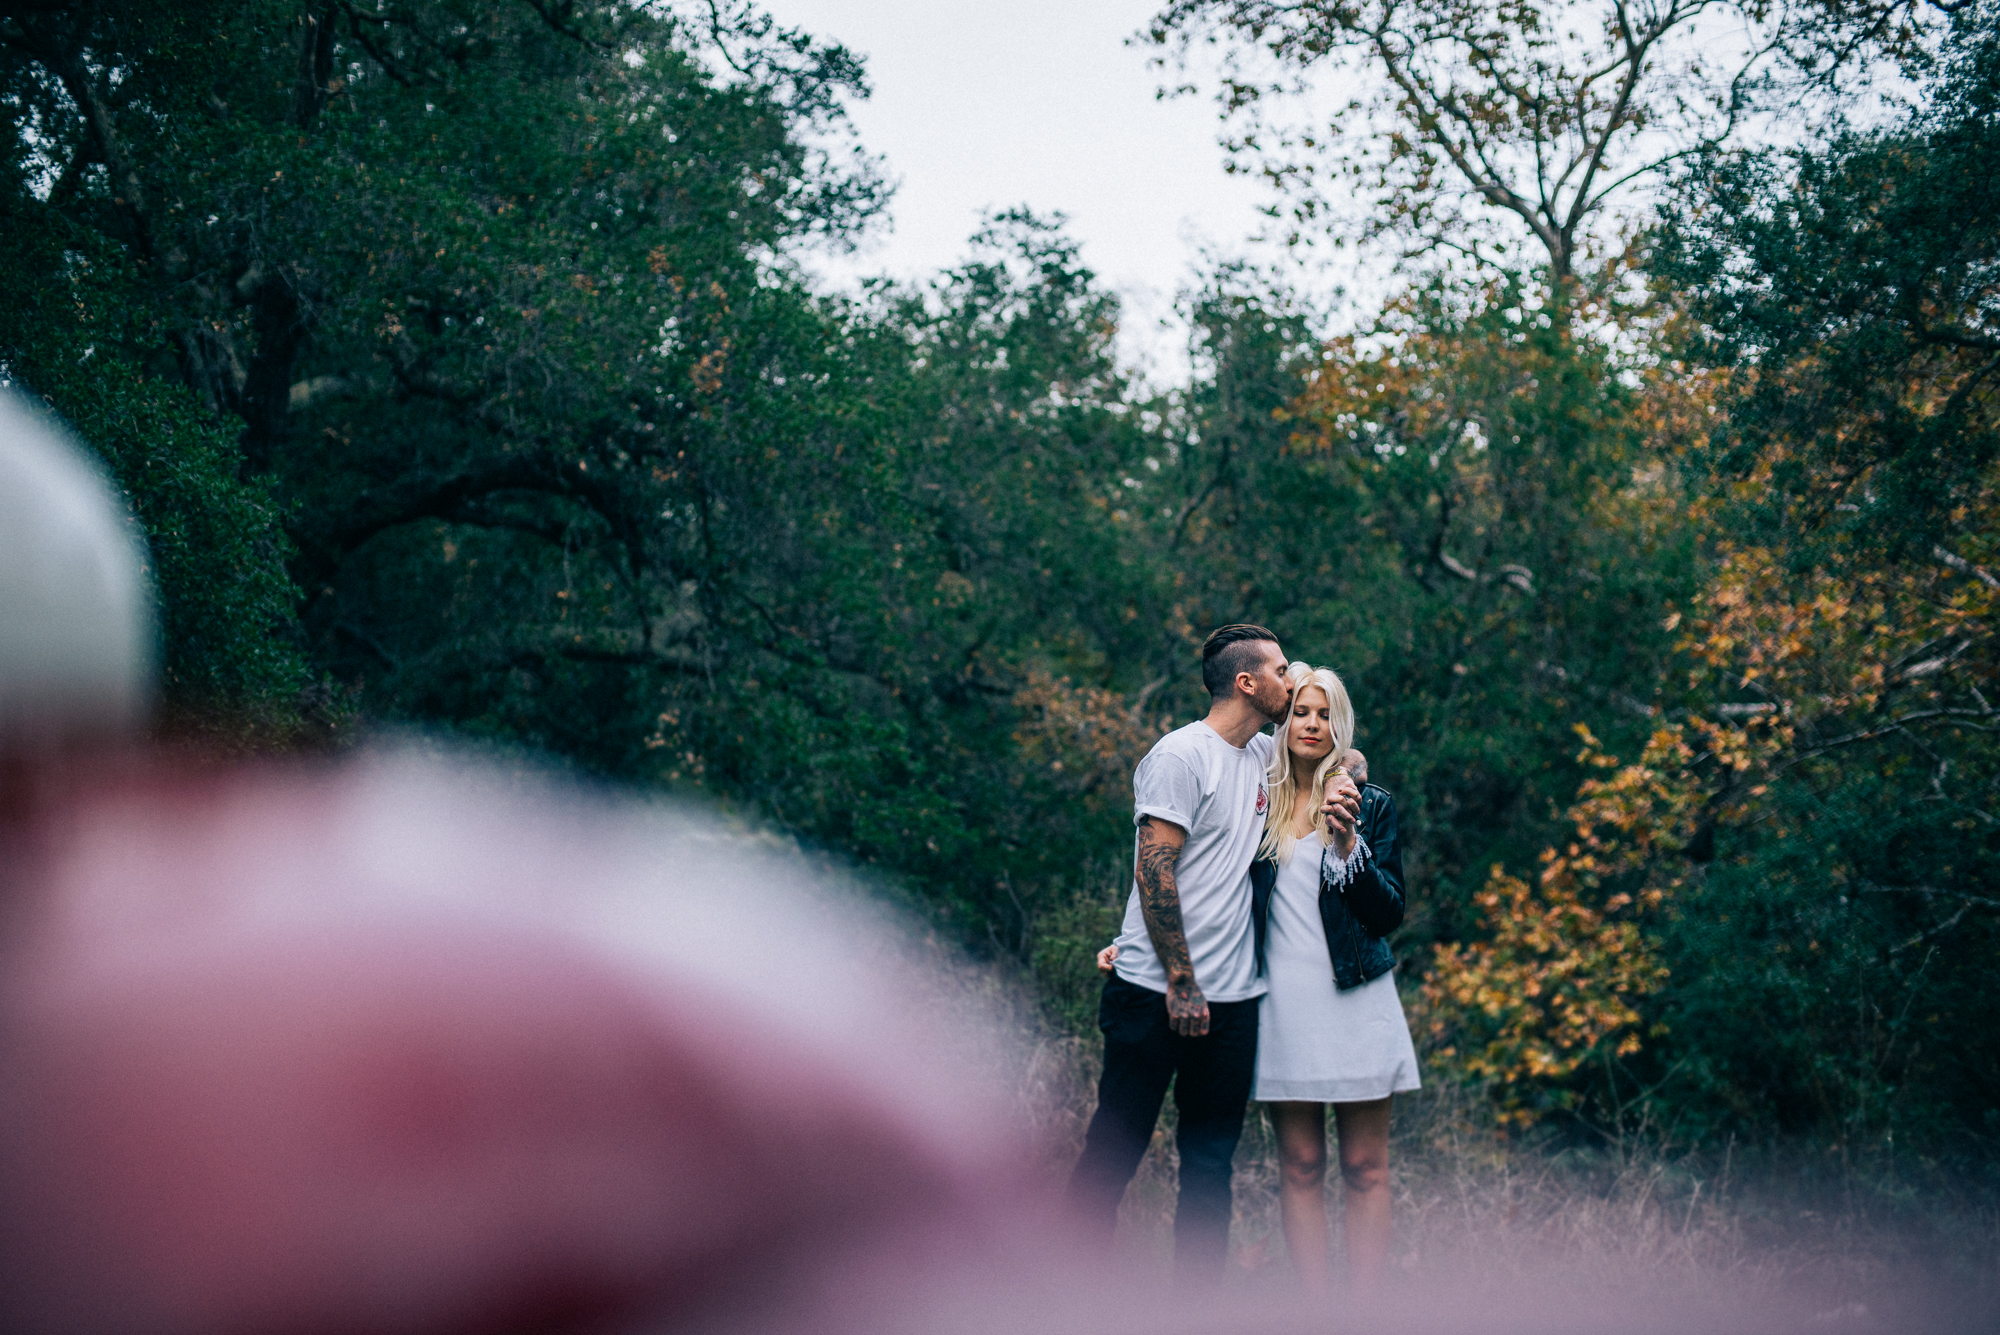 ©Isaiah & Taylor Photography - Destination Wedding Photographers - Downtown Forest Motorcycle Engagement -024.jpg